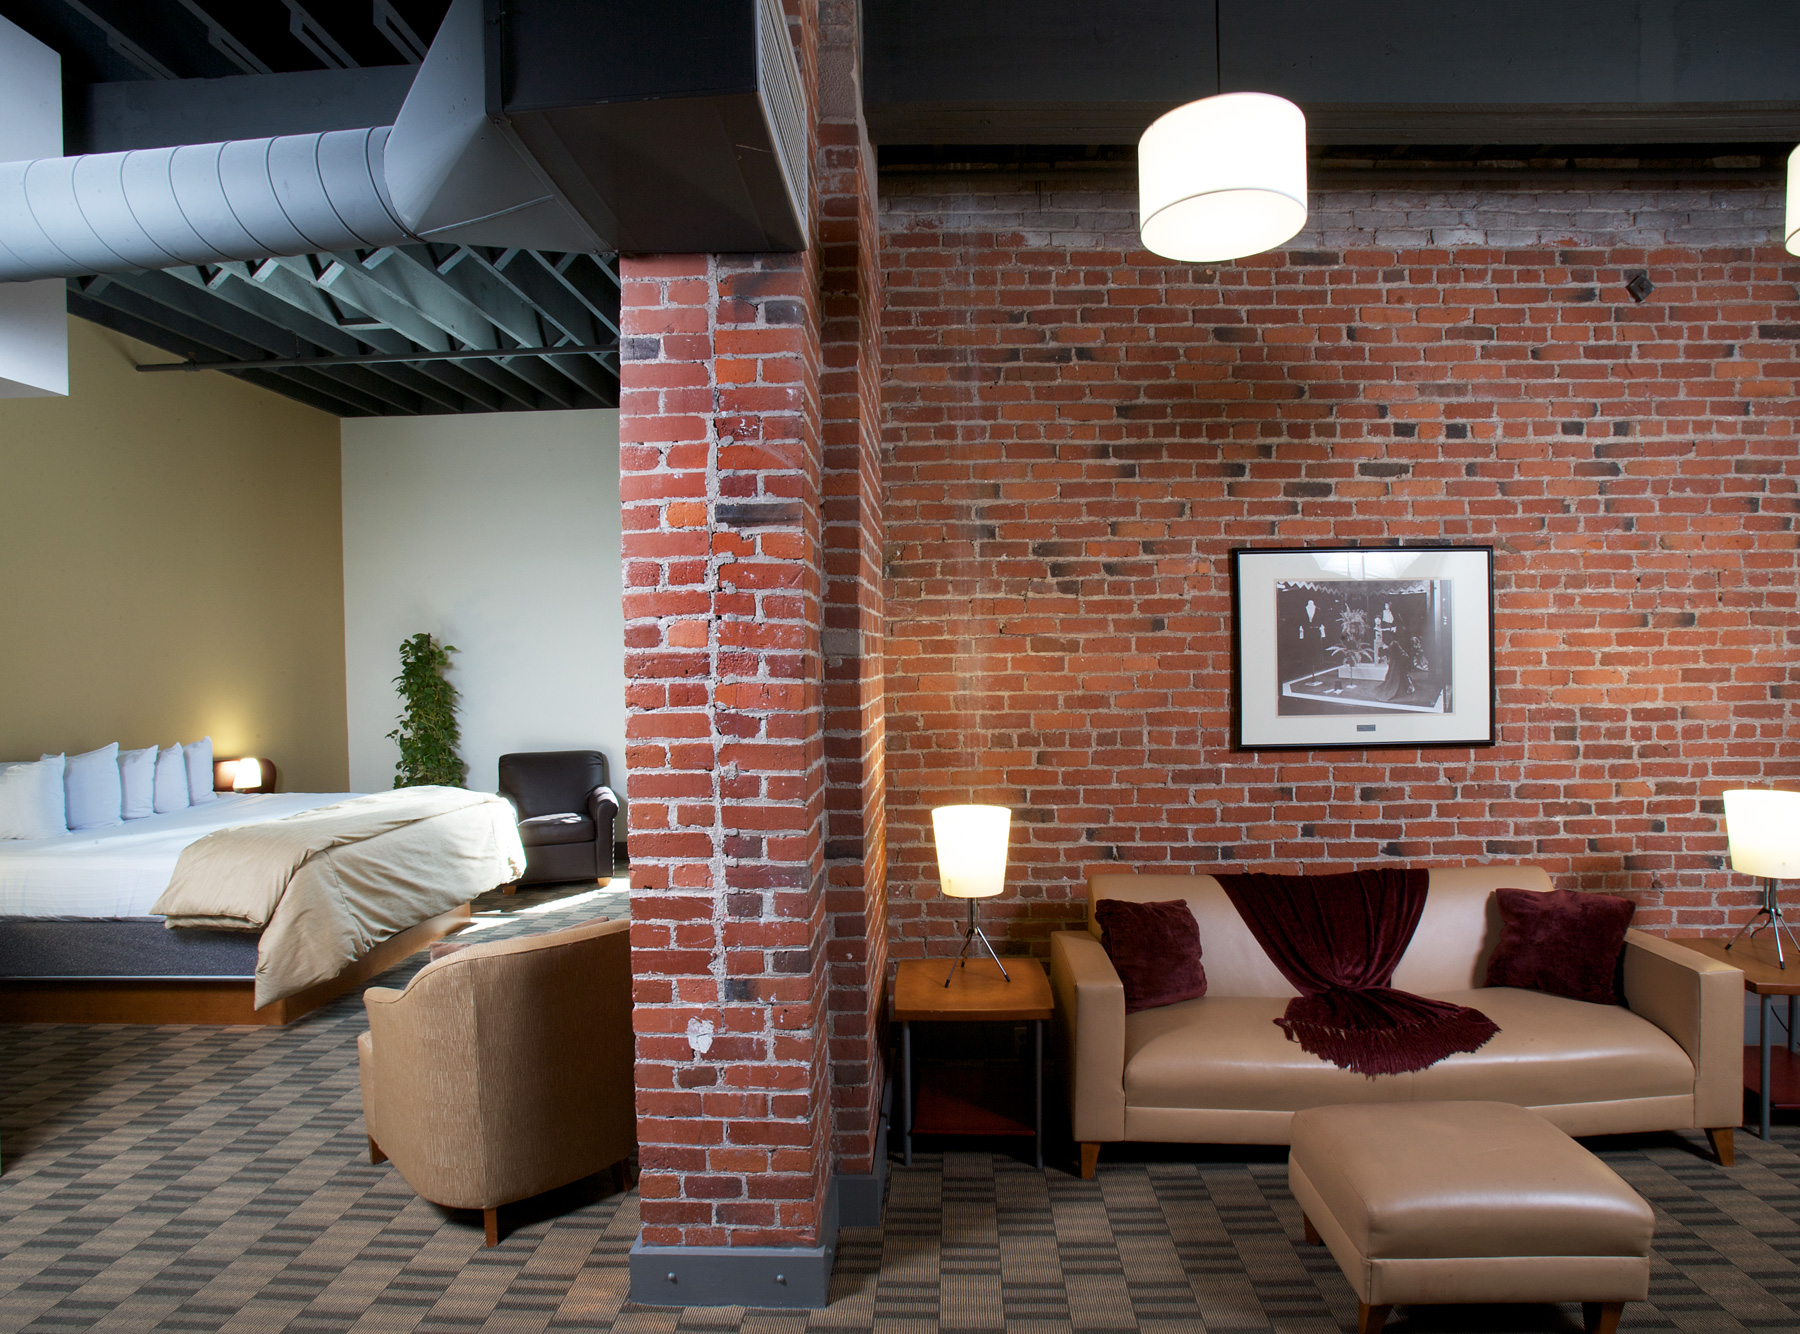 Columbus, Ohio: The Lofts in Columbus